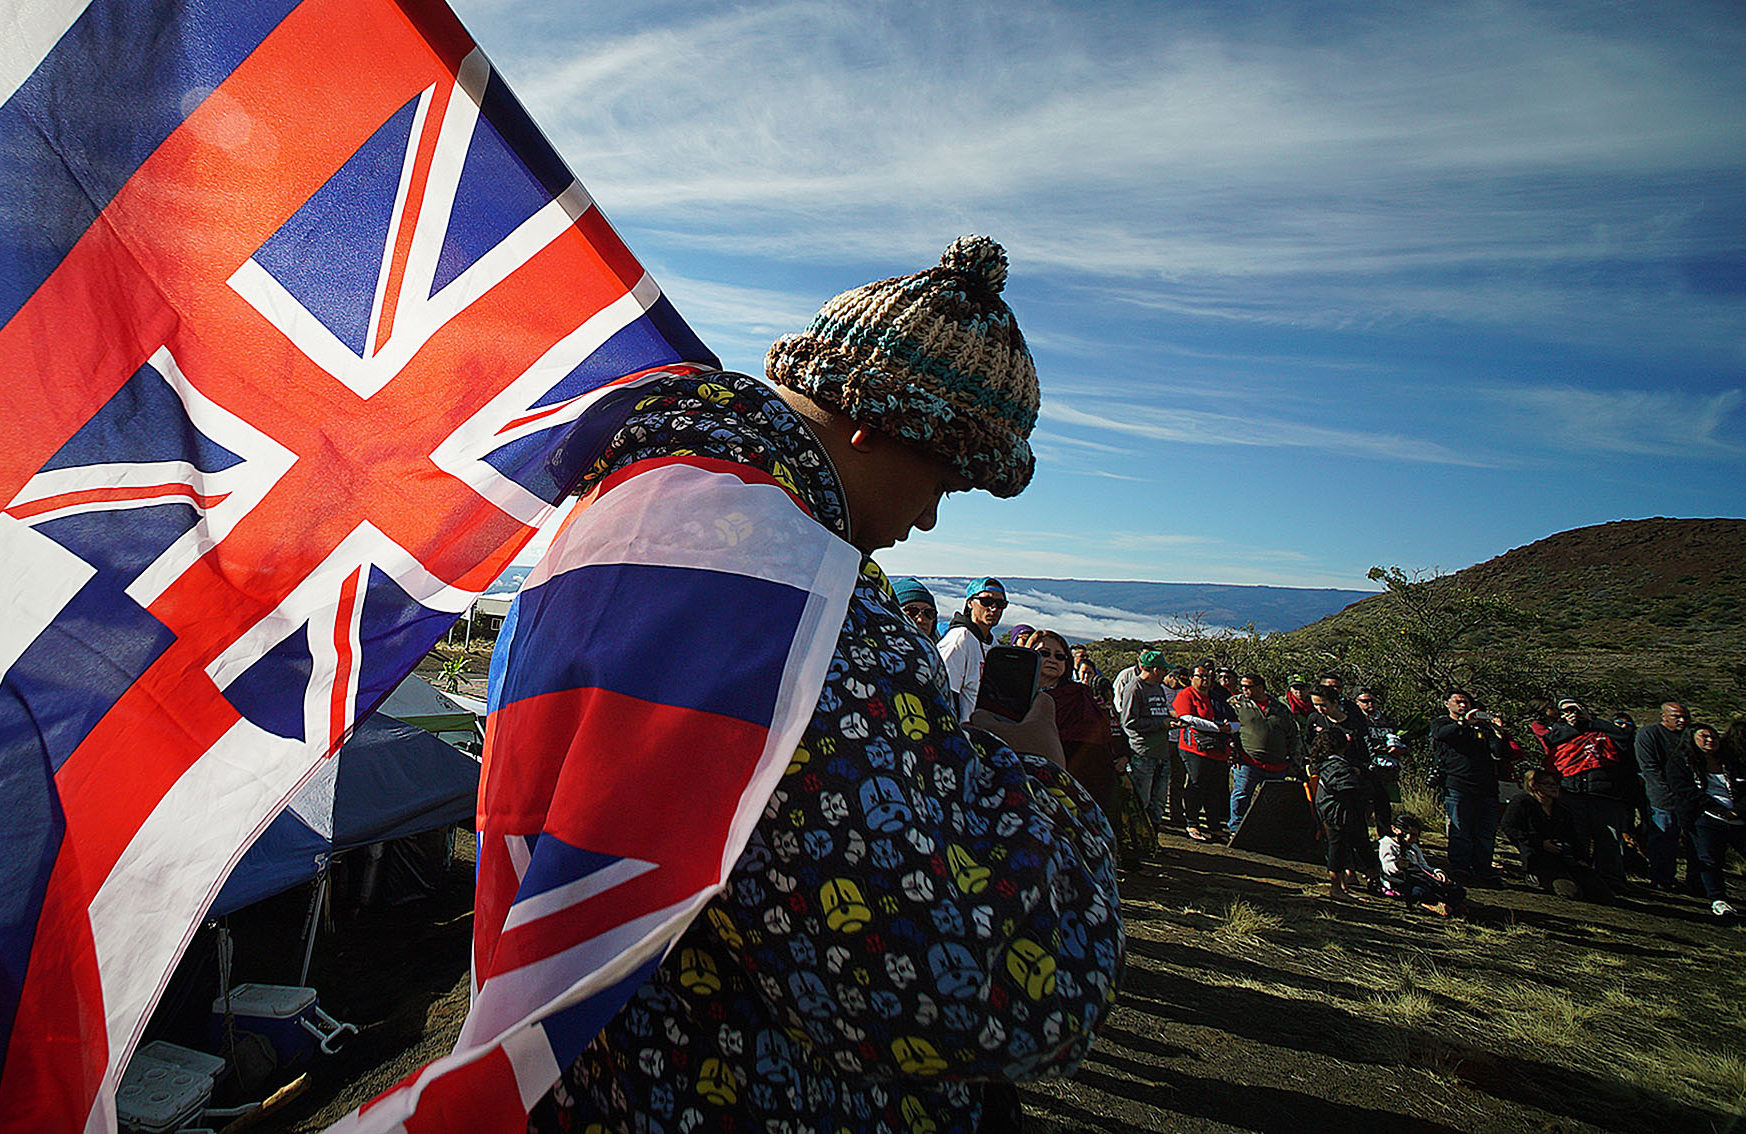 Big Island resident Kalae Kauwe is draped in Hawaiian flags as hula halau dance near the Mauna Kea visitors center.